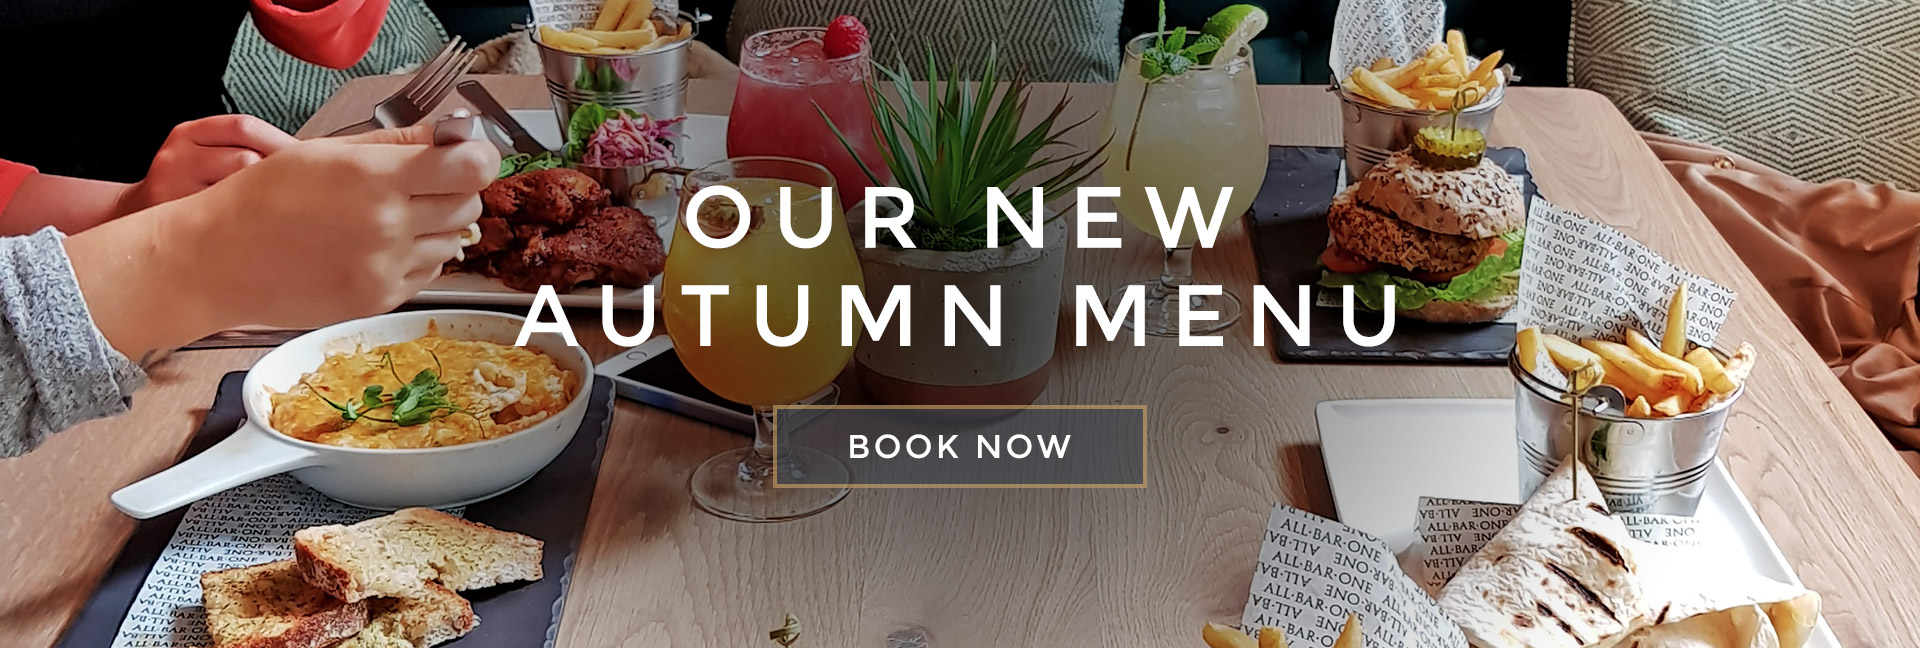 Our new Autumn menu at All Bar One Chiswell Street - Book now